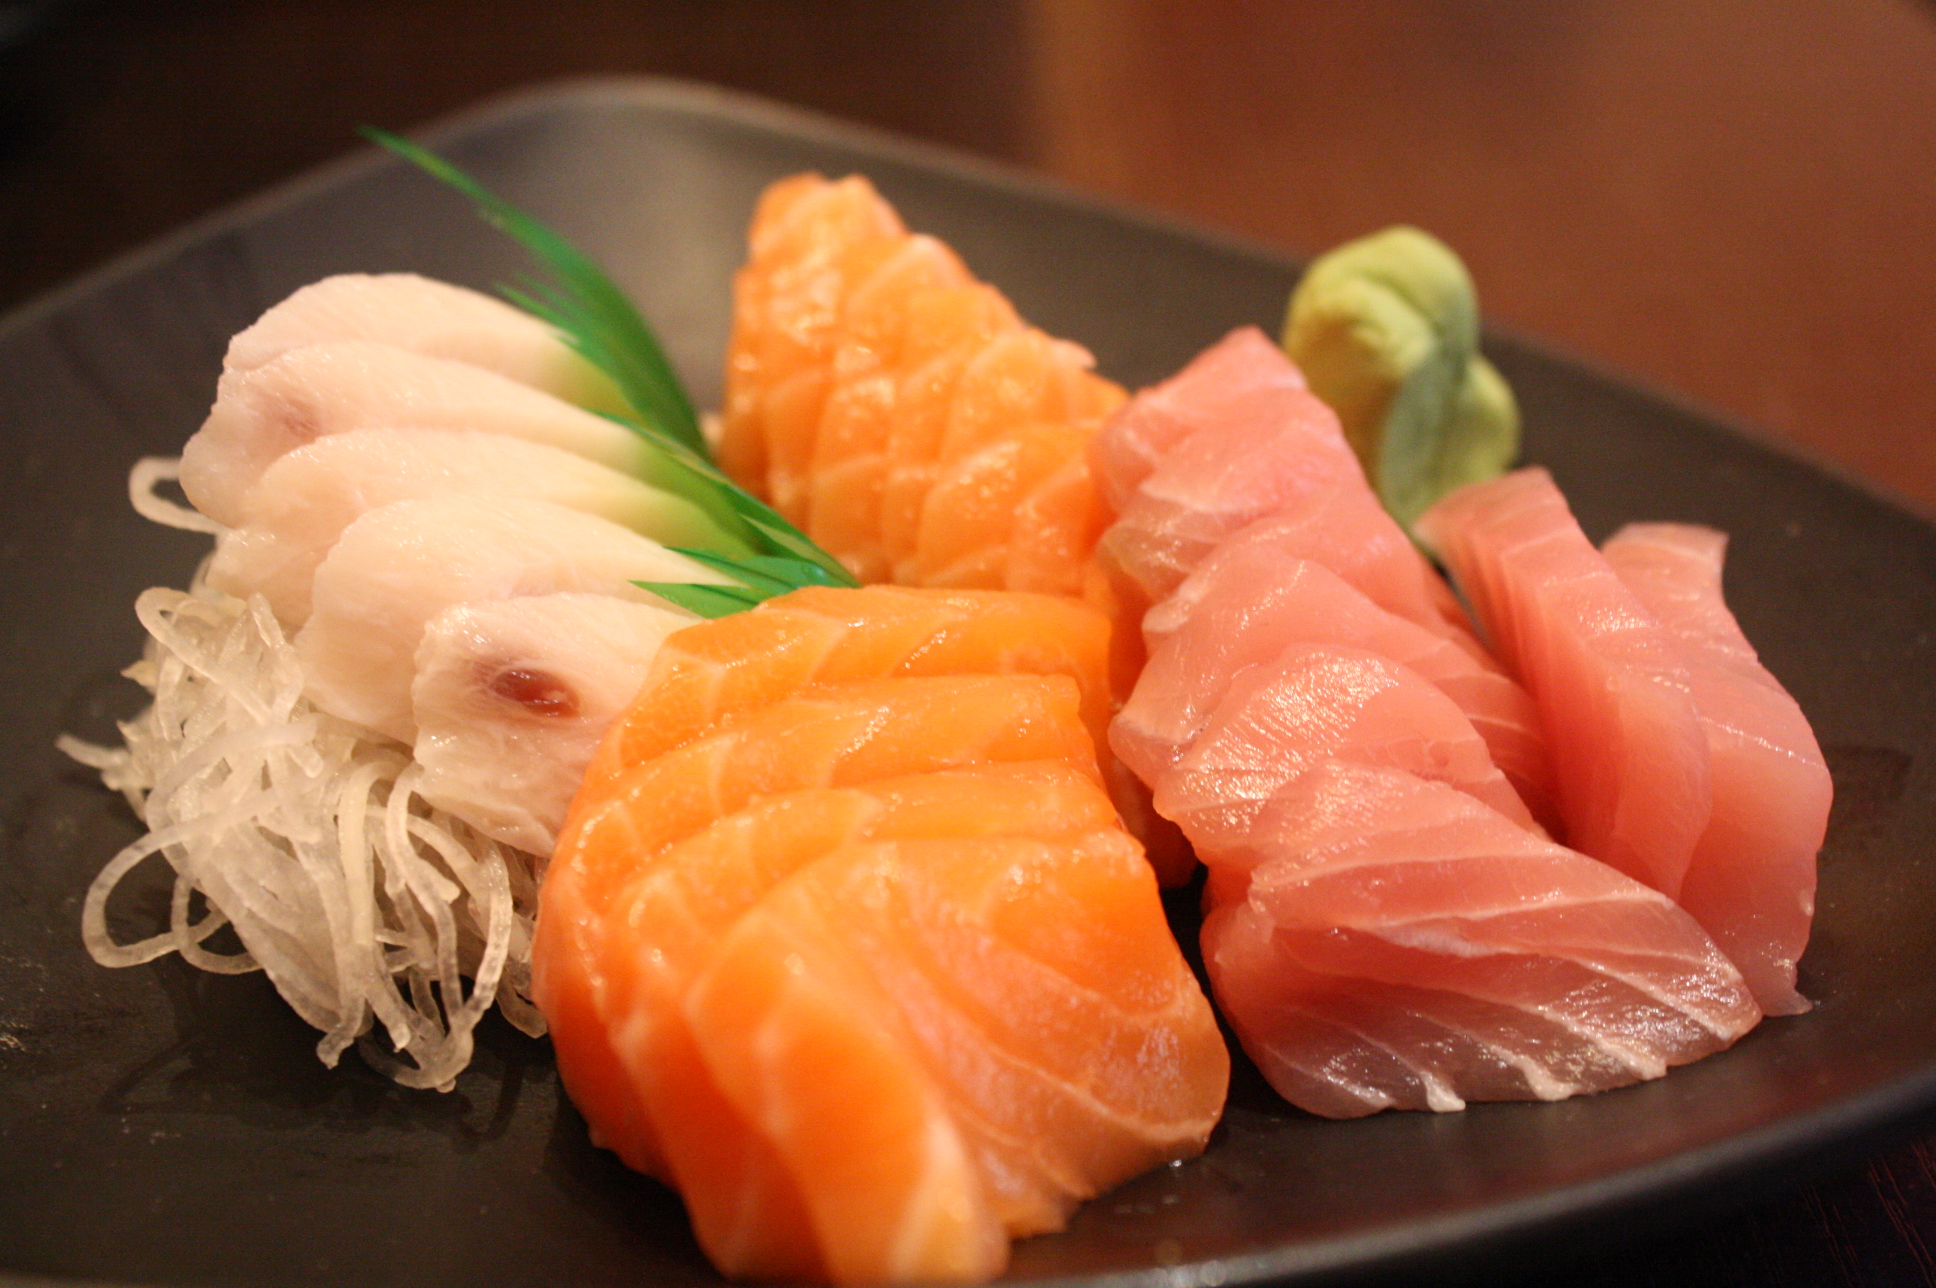 Senki japanese buffet ooh baby you 39 re a classic for Best fish for sushi